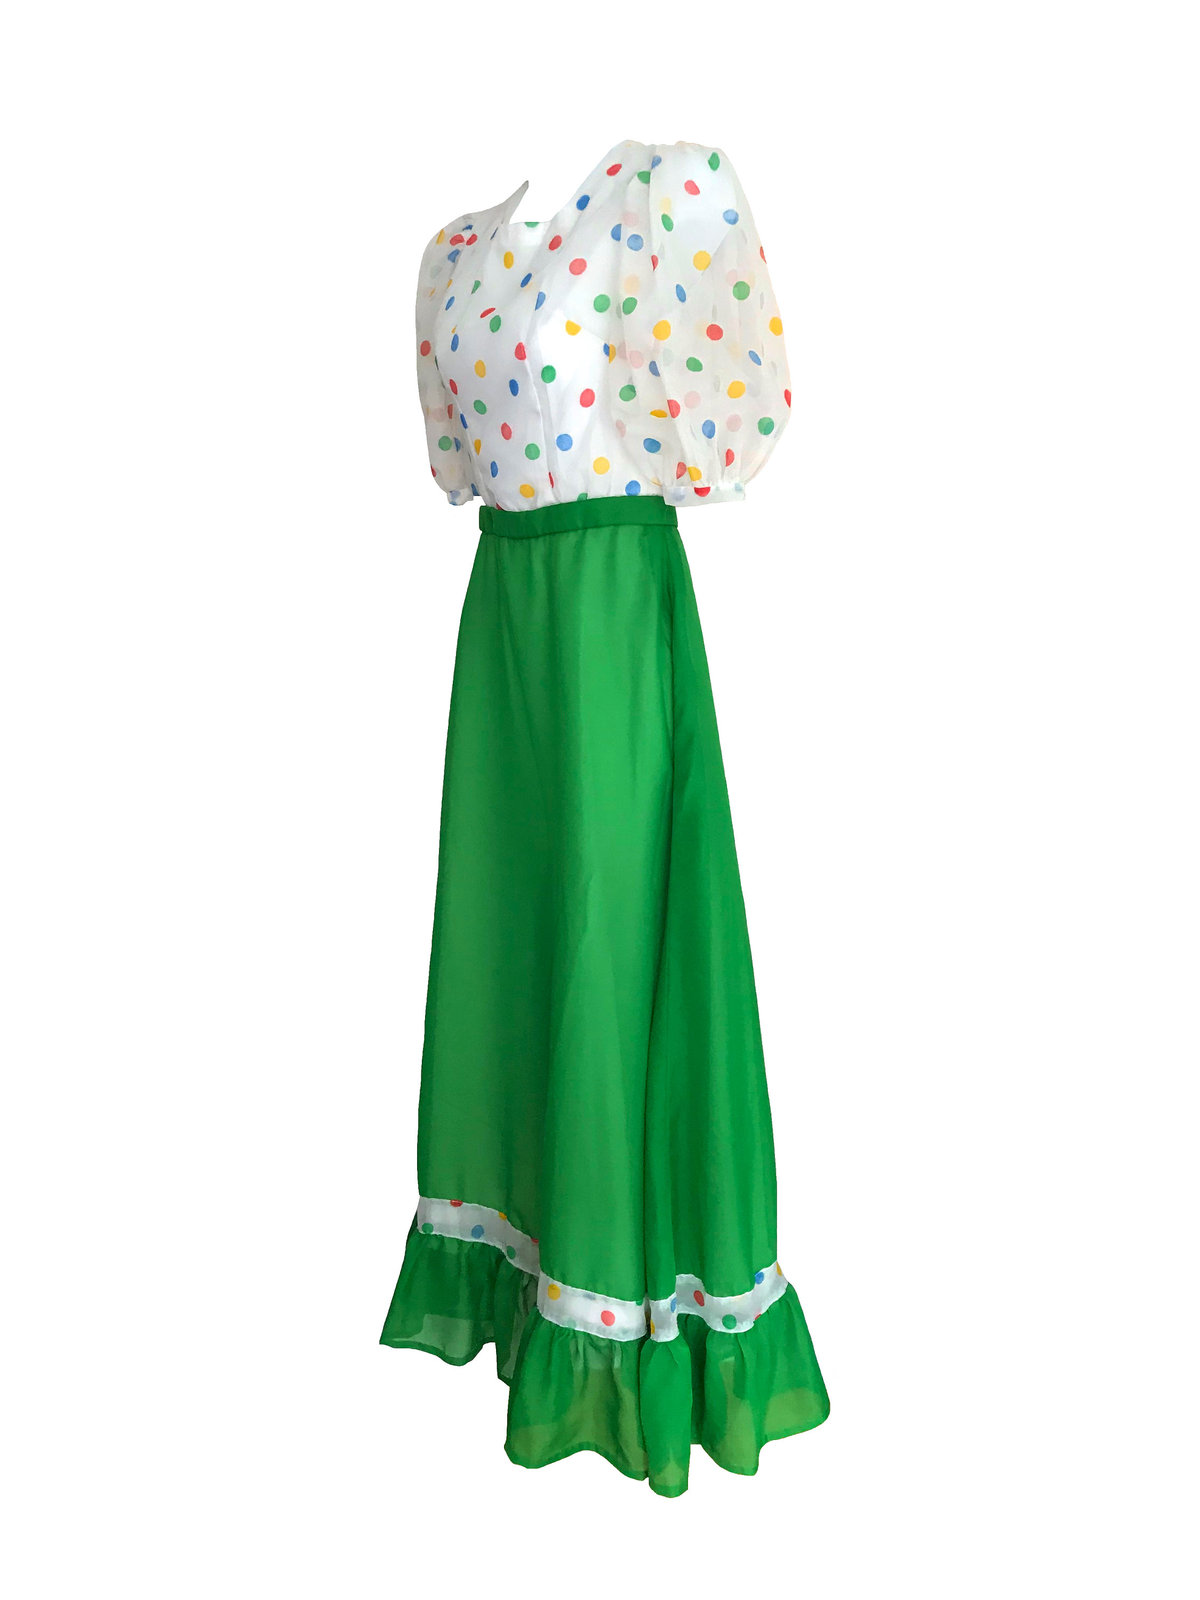 60s-70s Sheer Chiffon Rainbow Polka Dot Kelly Green Ruffle Skirt Boho Folk Dress image 6